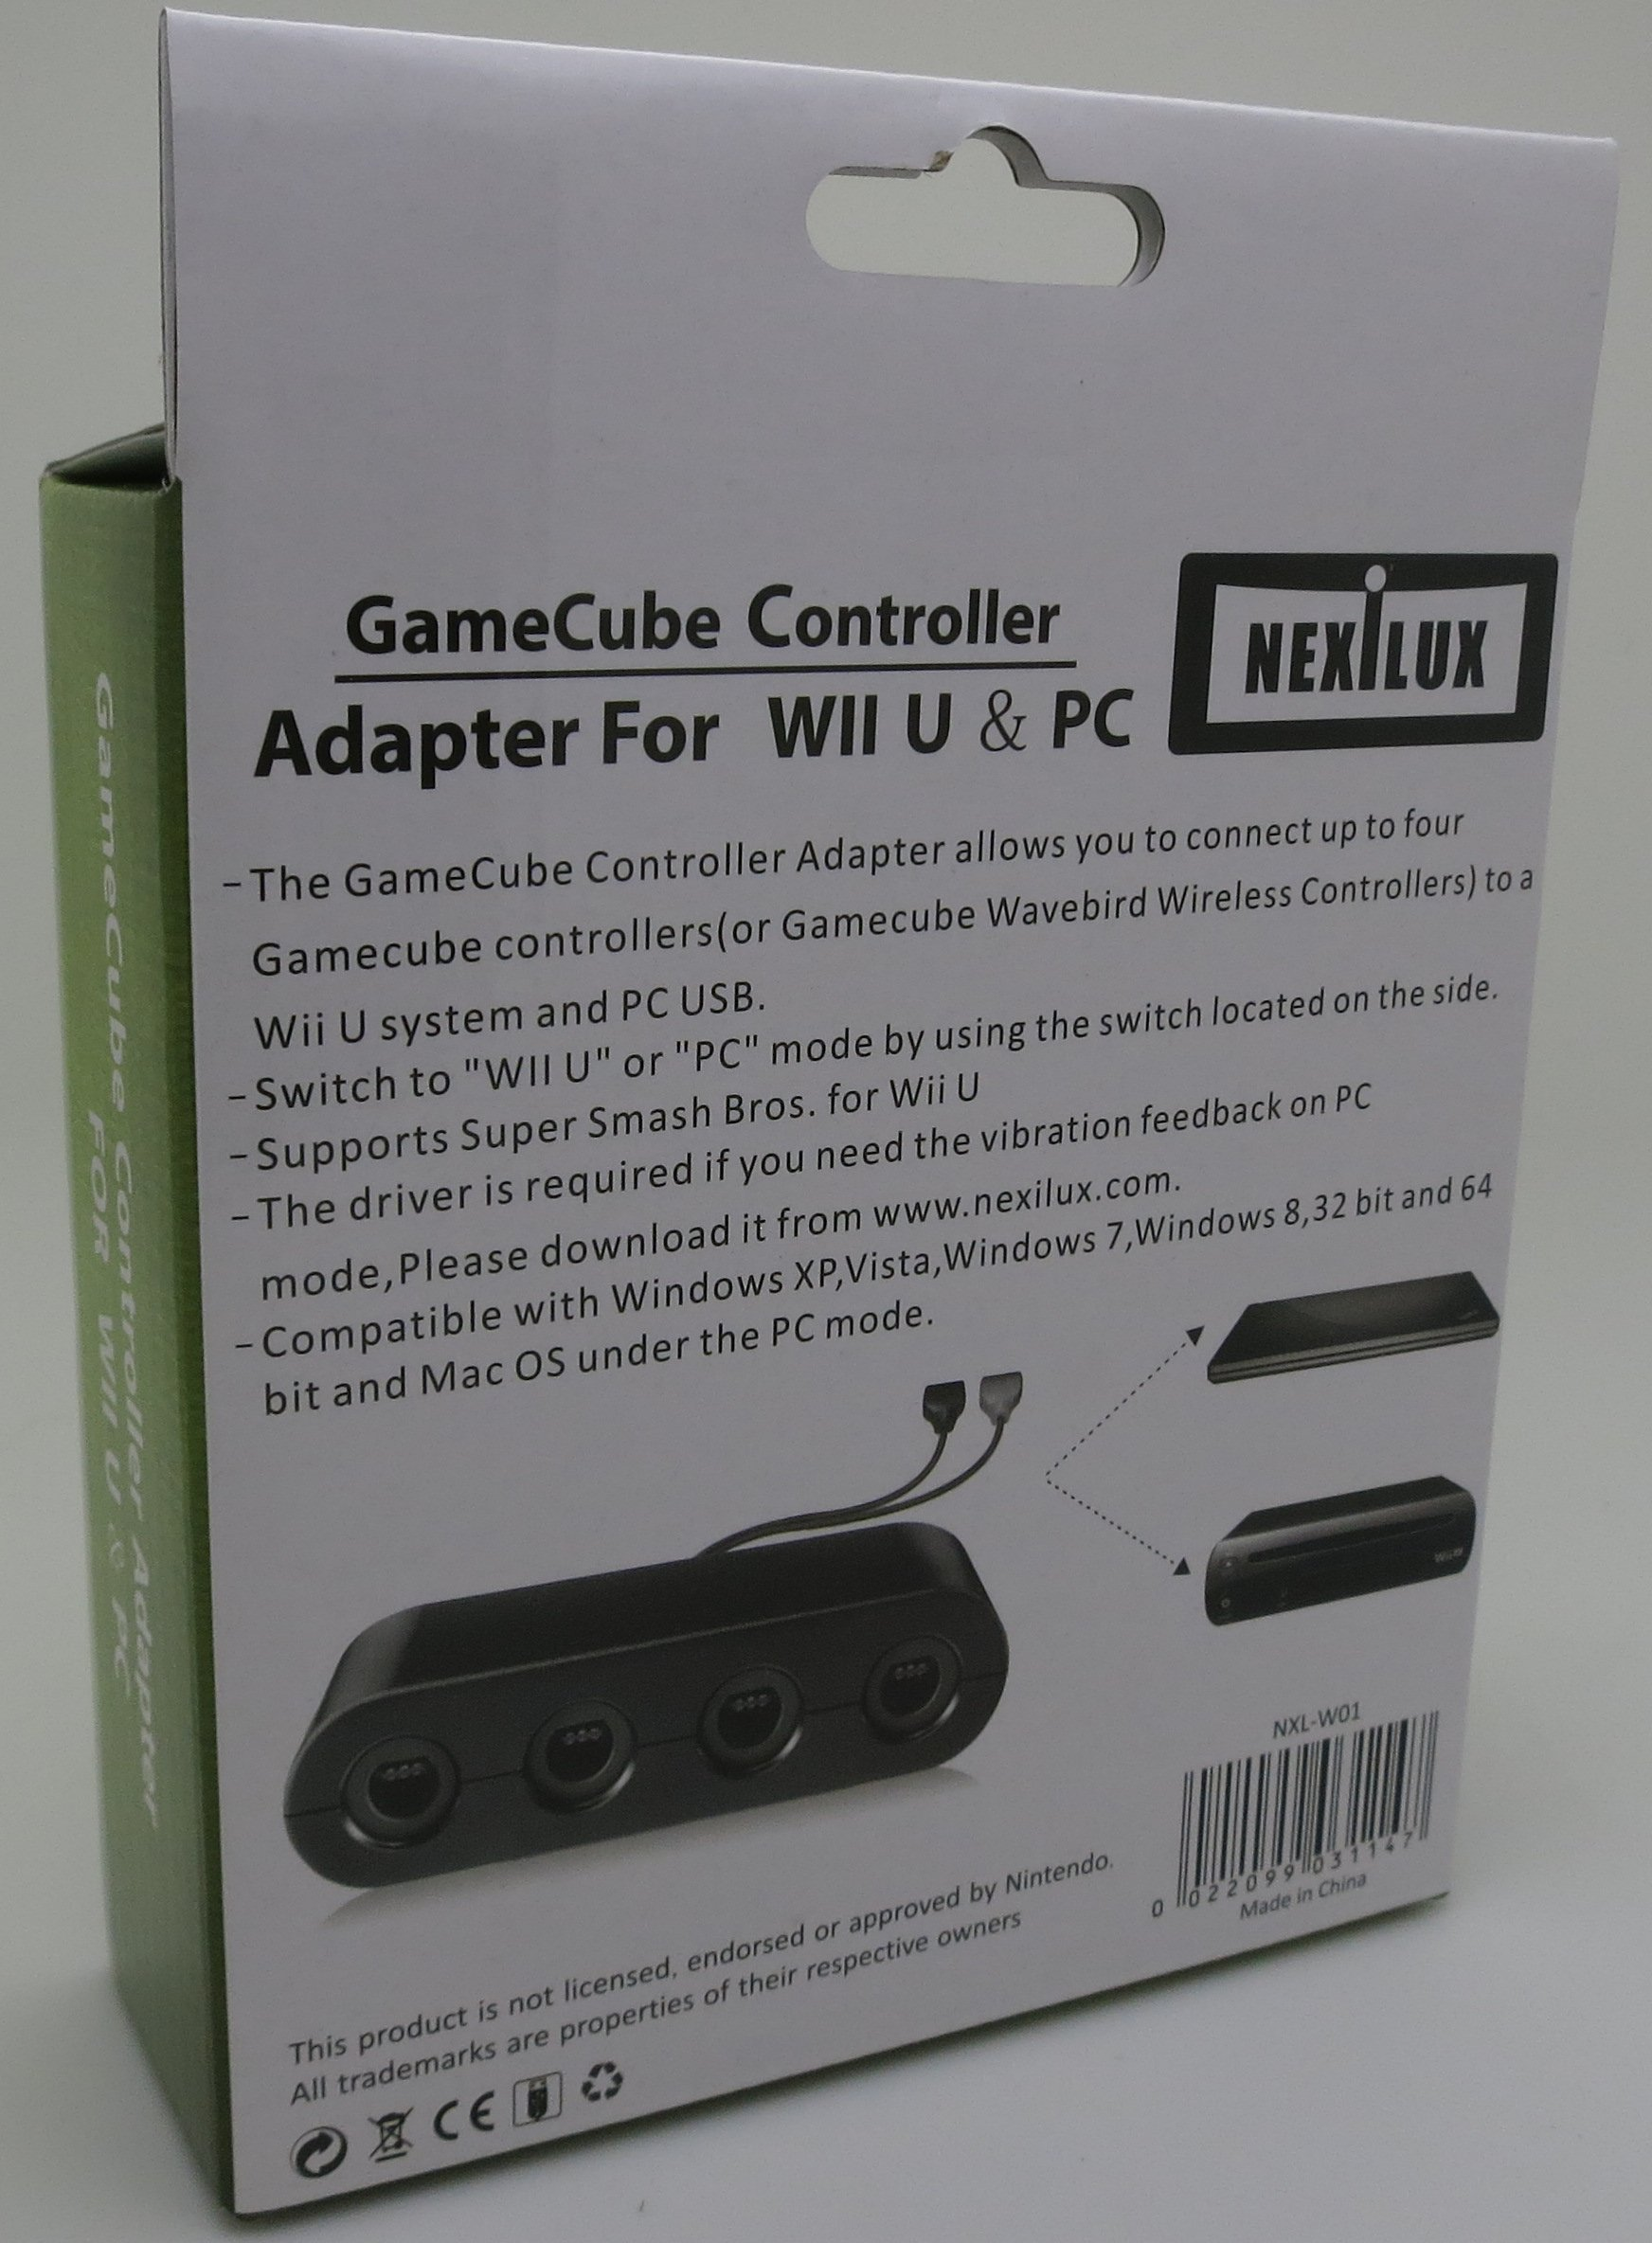 GameCube Controller Adapter for Wii U, PC USB & Switch - NEXiLUX ...